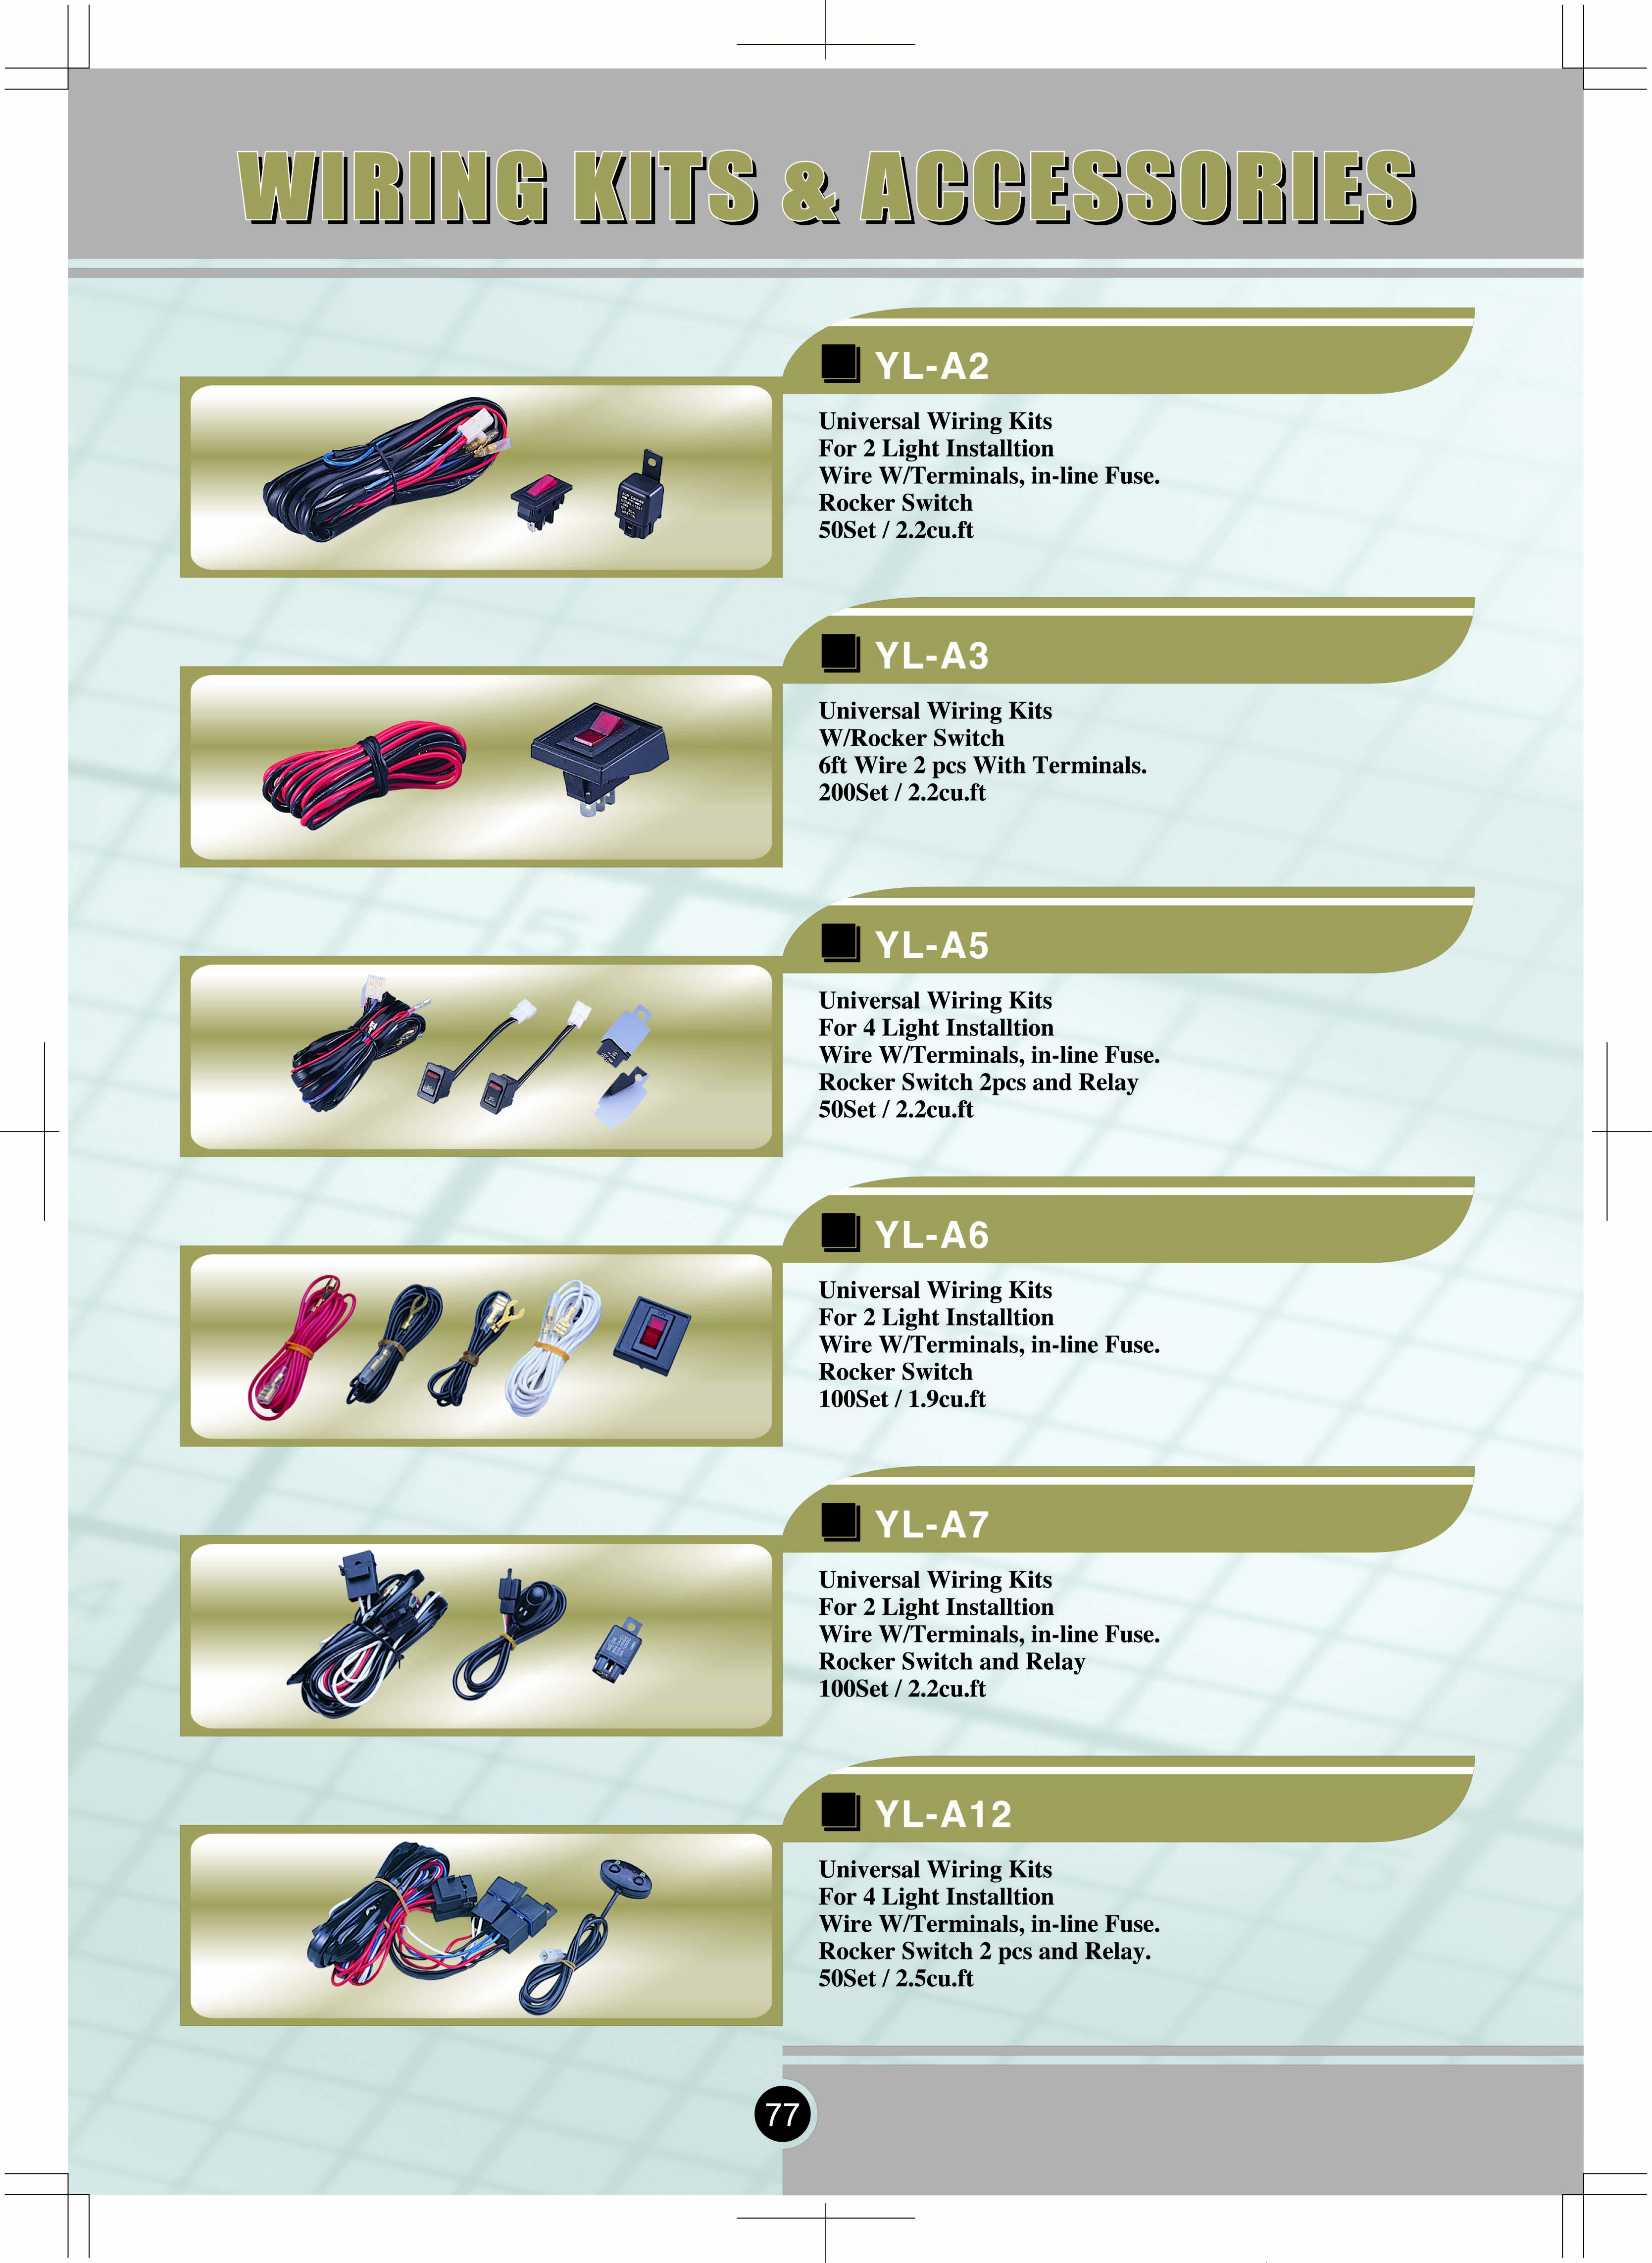 satuga wiring kits & accessories Wiring a Relay for Accessories  Home Audio Wiring Accessories List Auto Electrical Wiring Stereo Plug Wiring